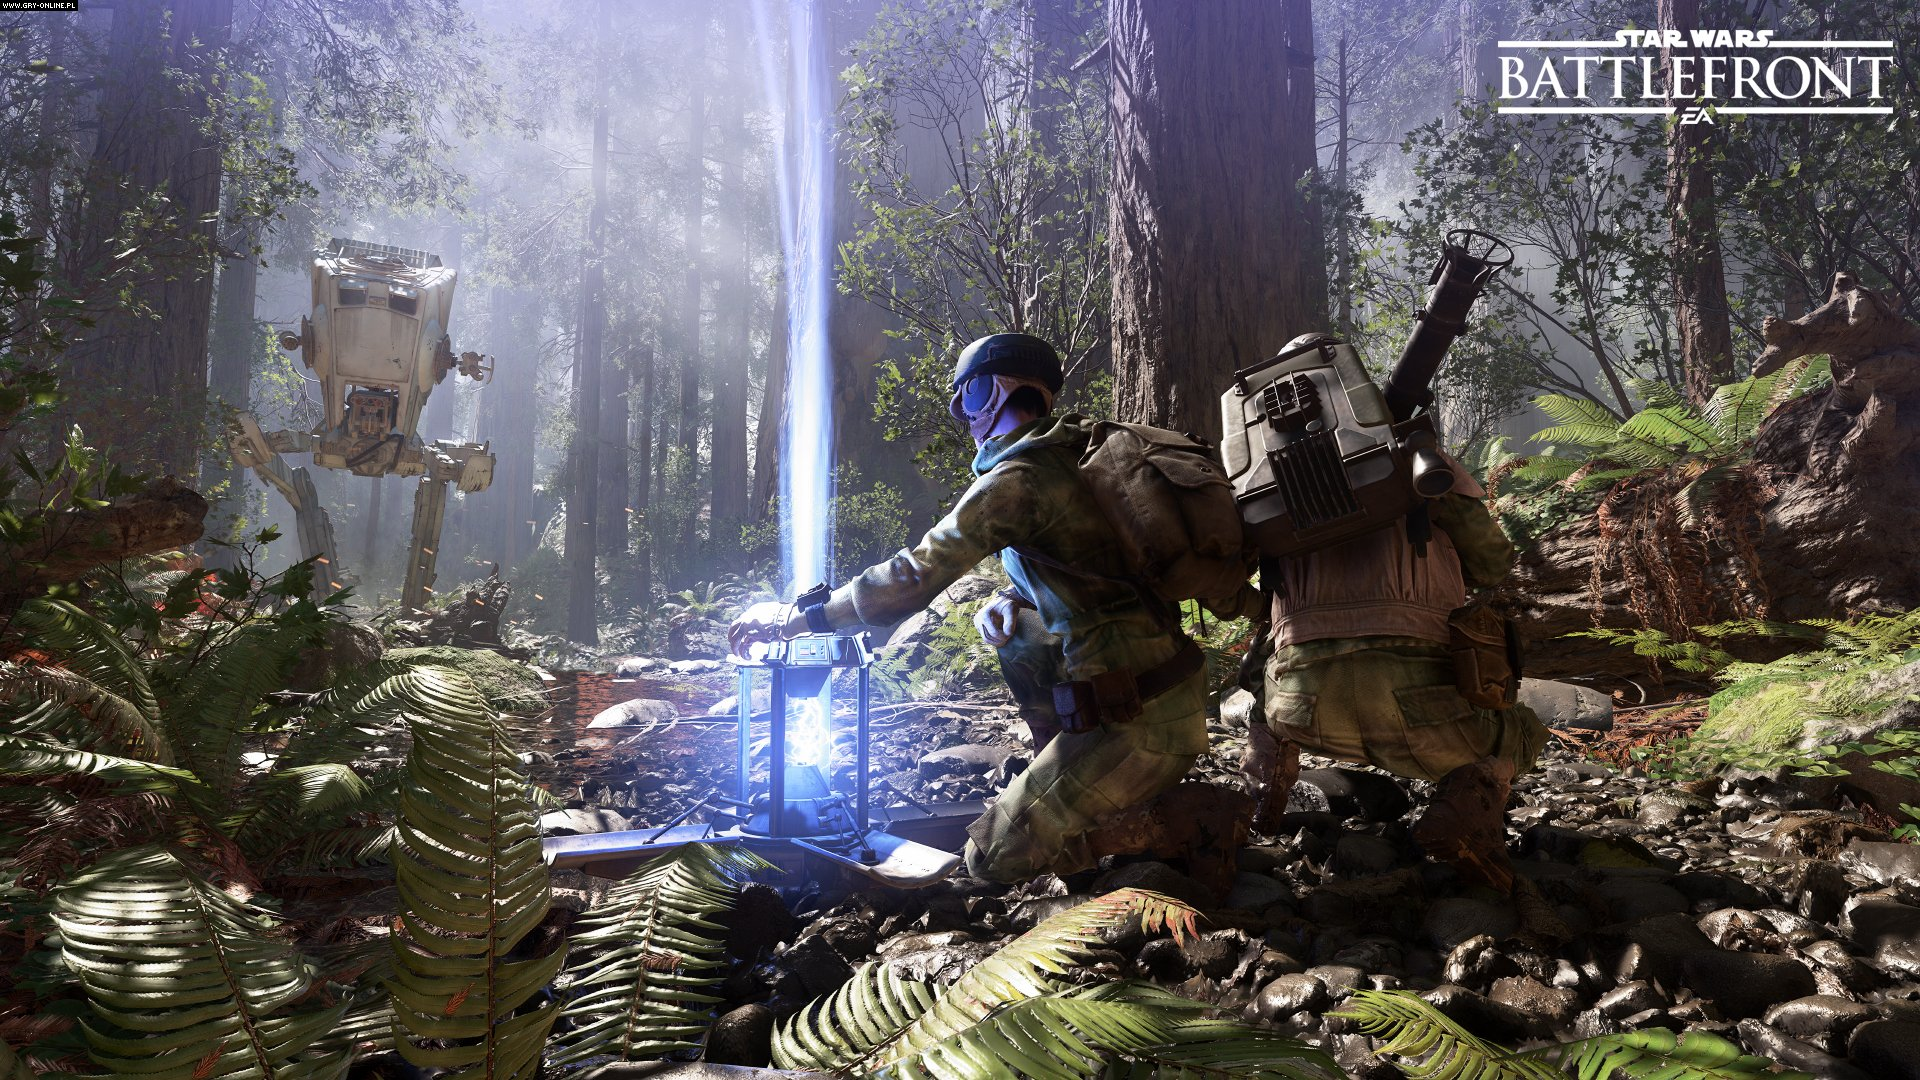 Star Wars: Battlefront XONE, PS4, PC Games Screen 13/27, EA Digital Illusions/EA DICE, Electronic Arts Inc.